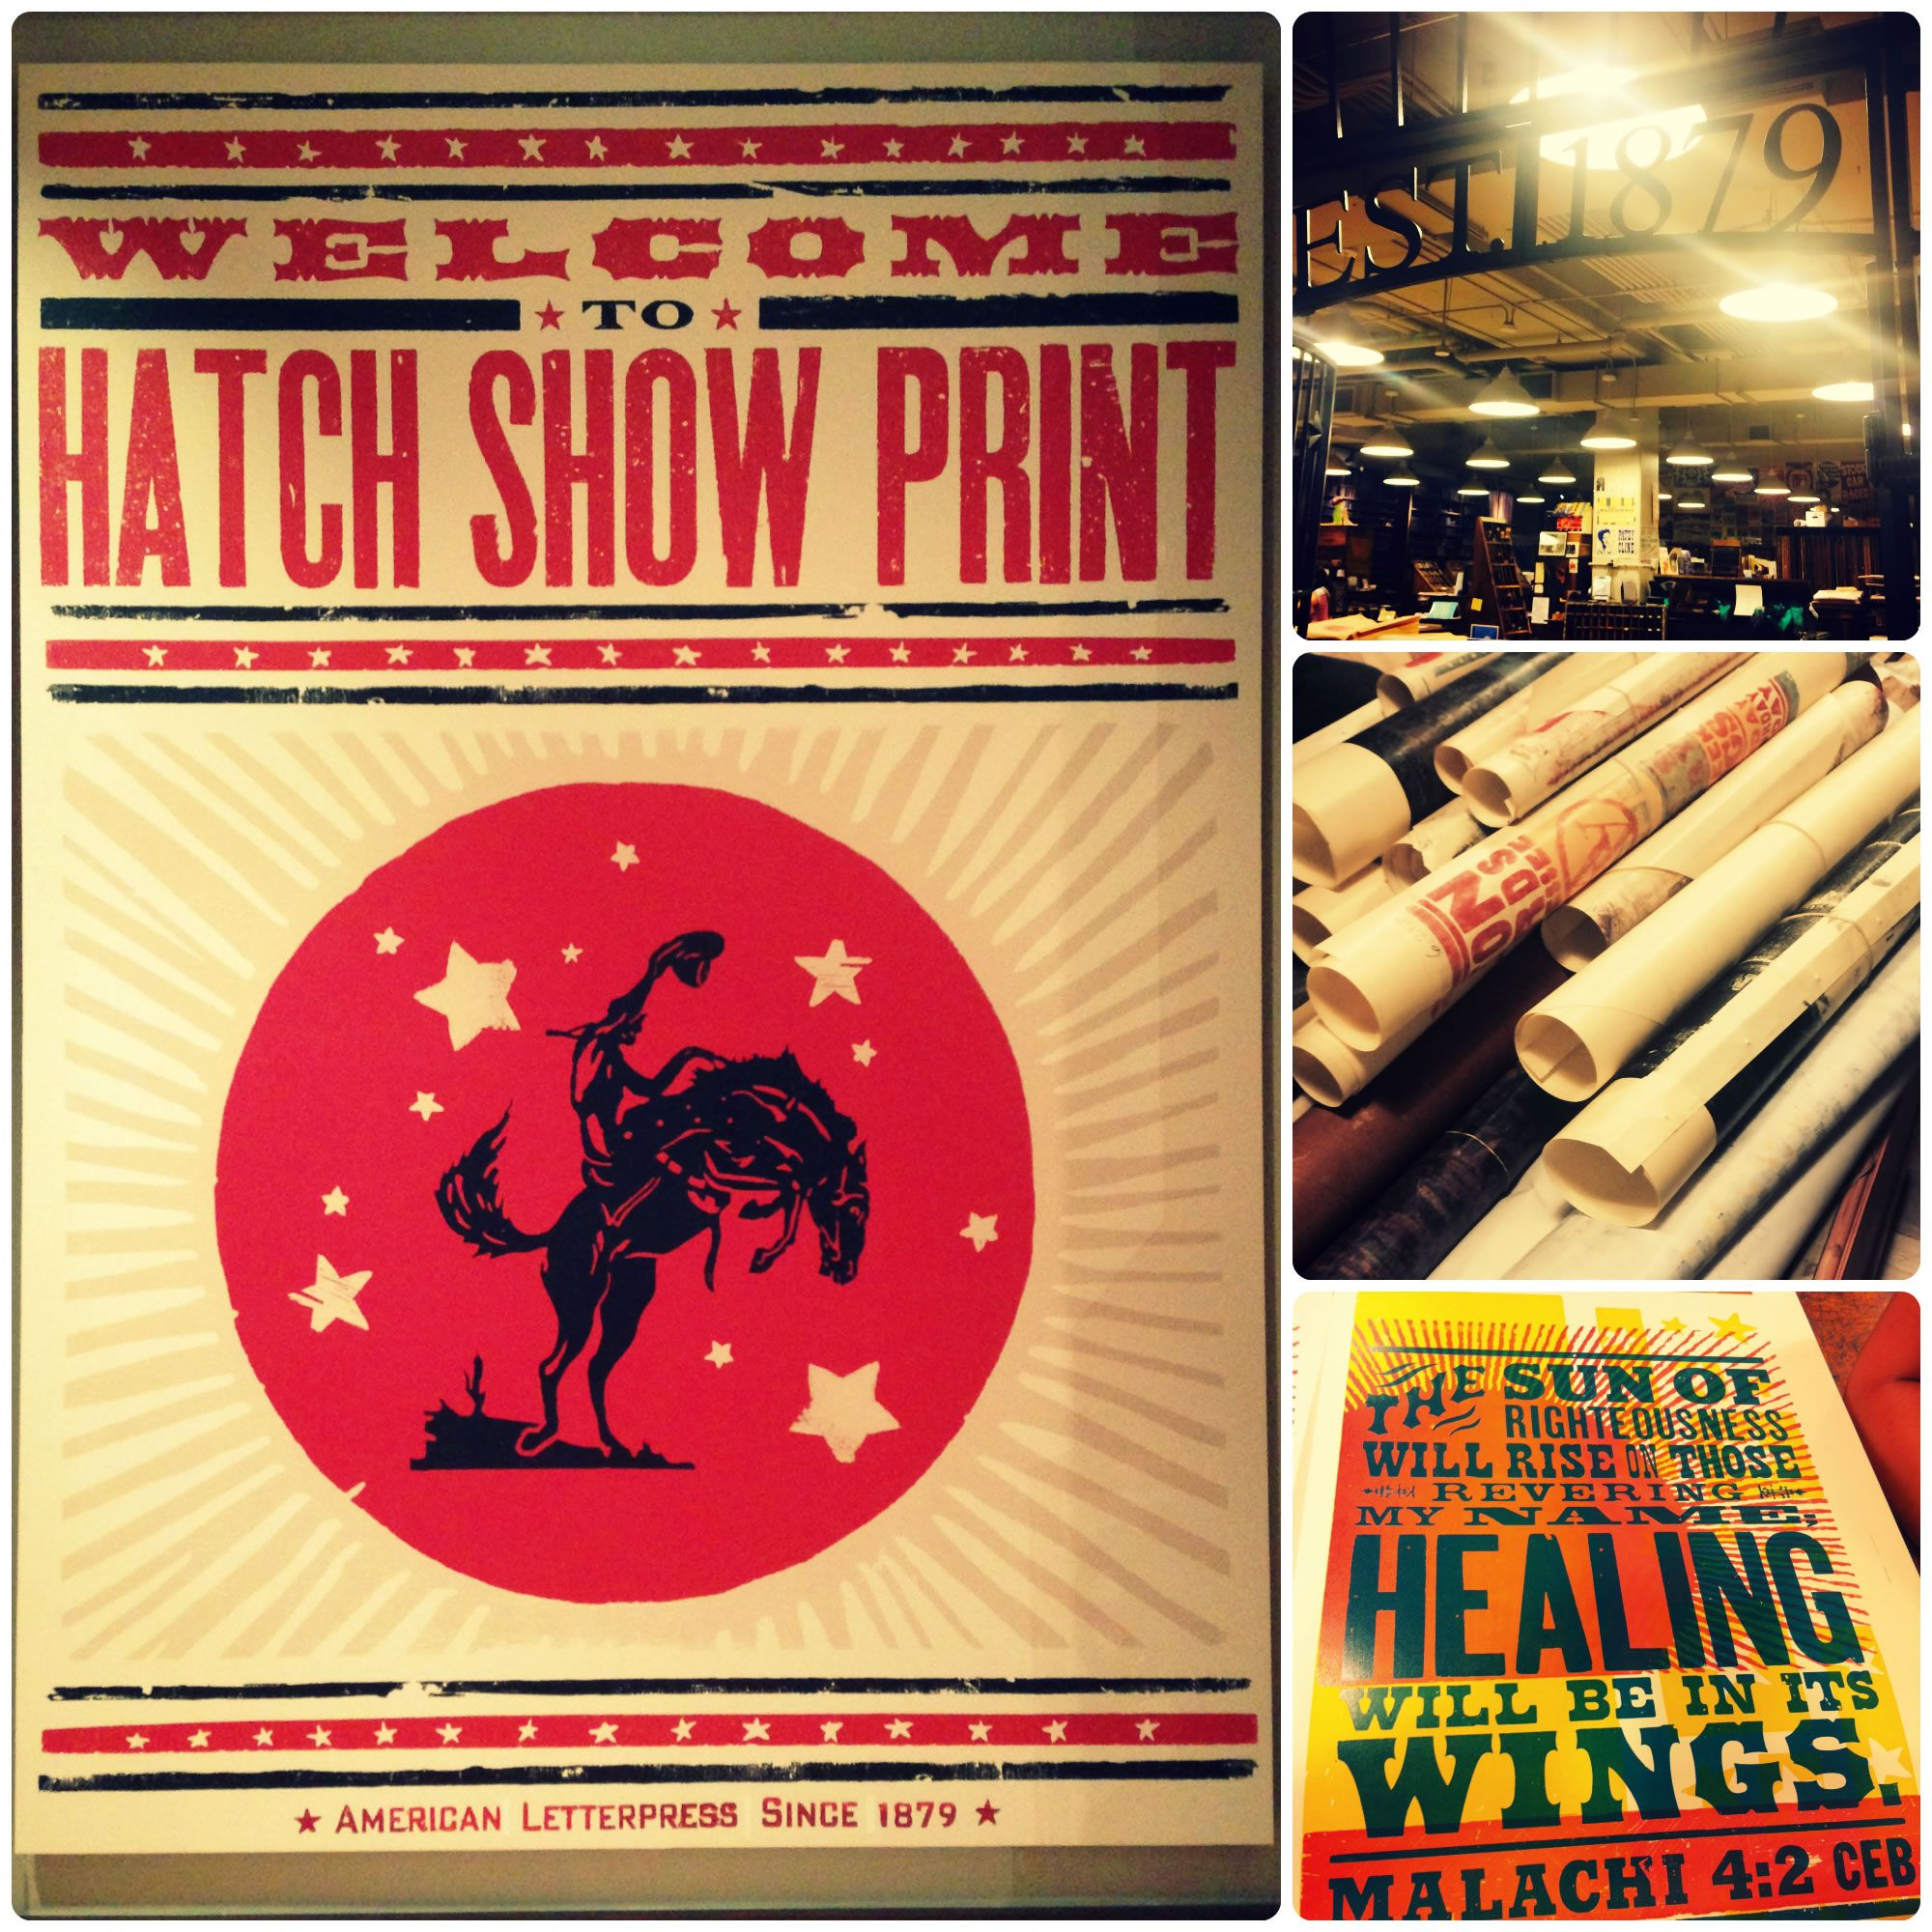 The Common English Bible and Hatch Show Print have partnered to ...